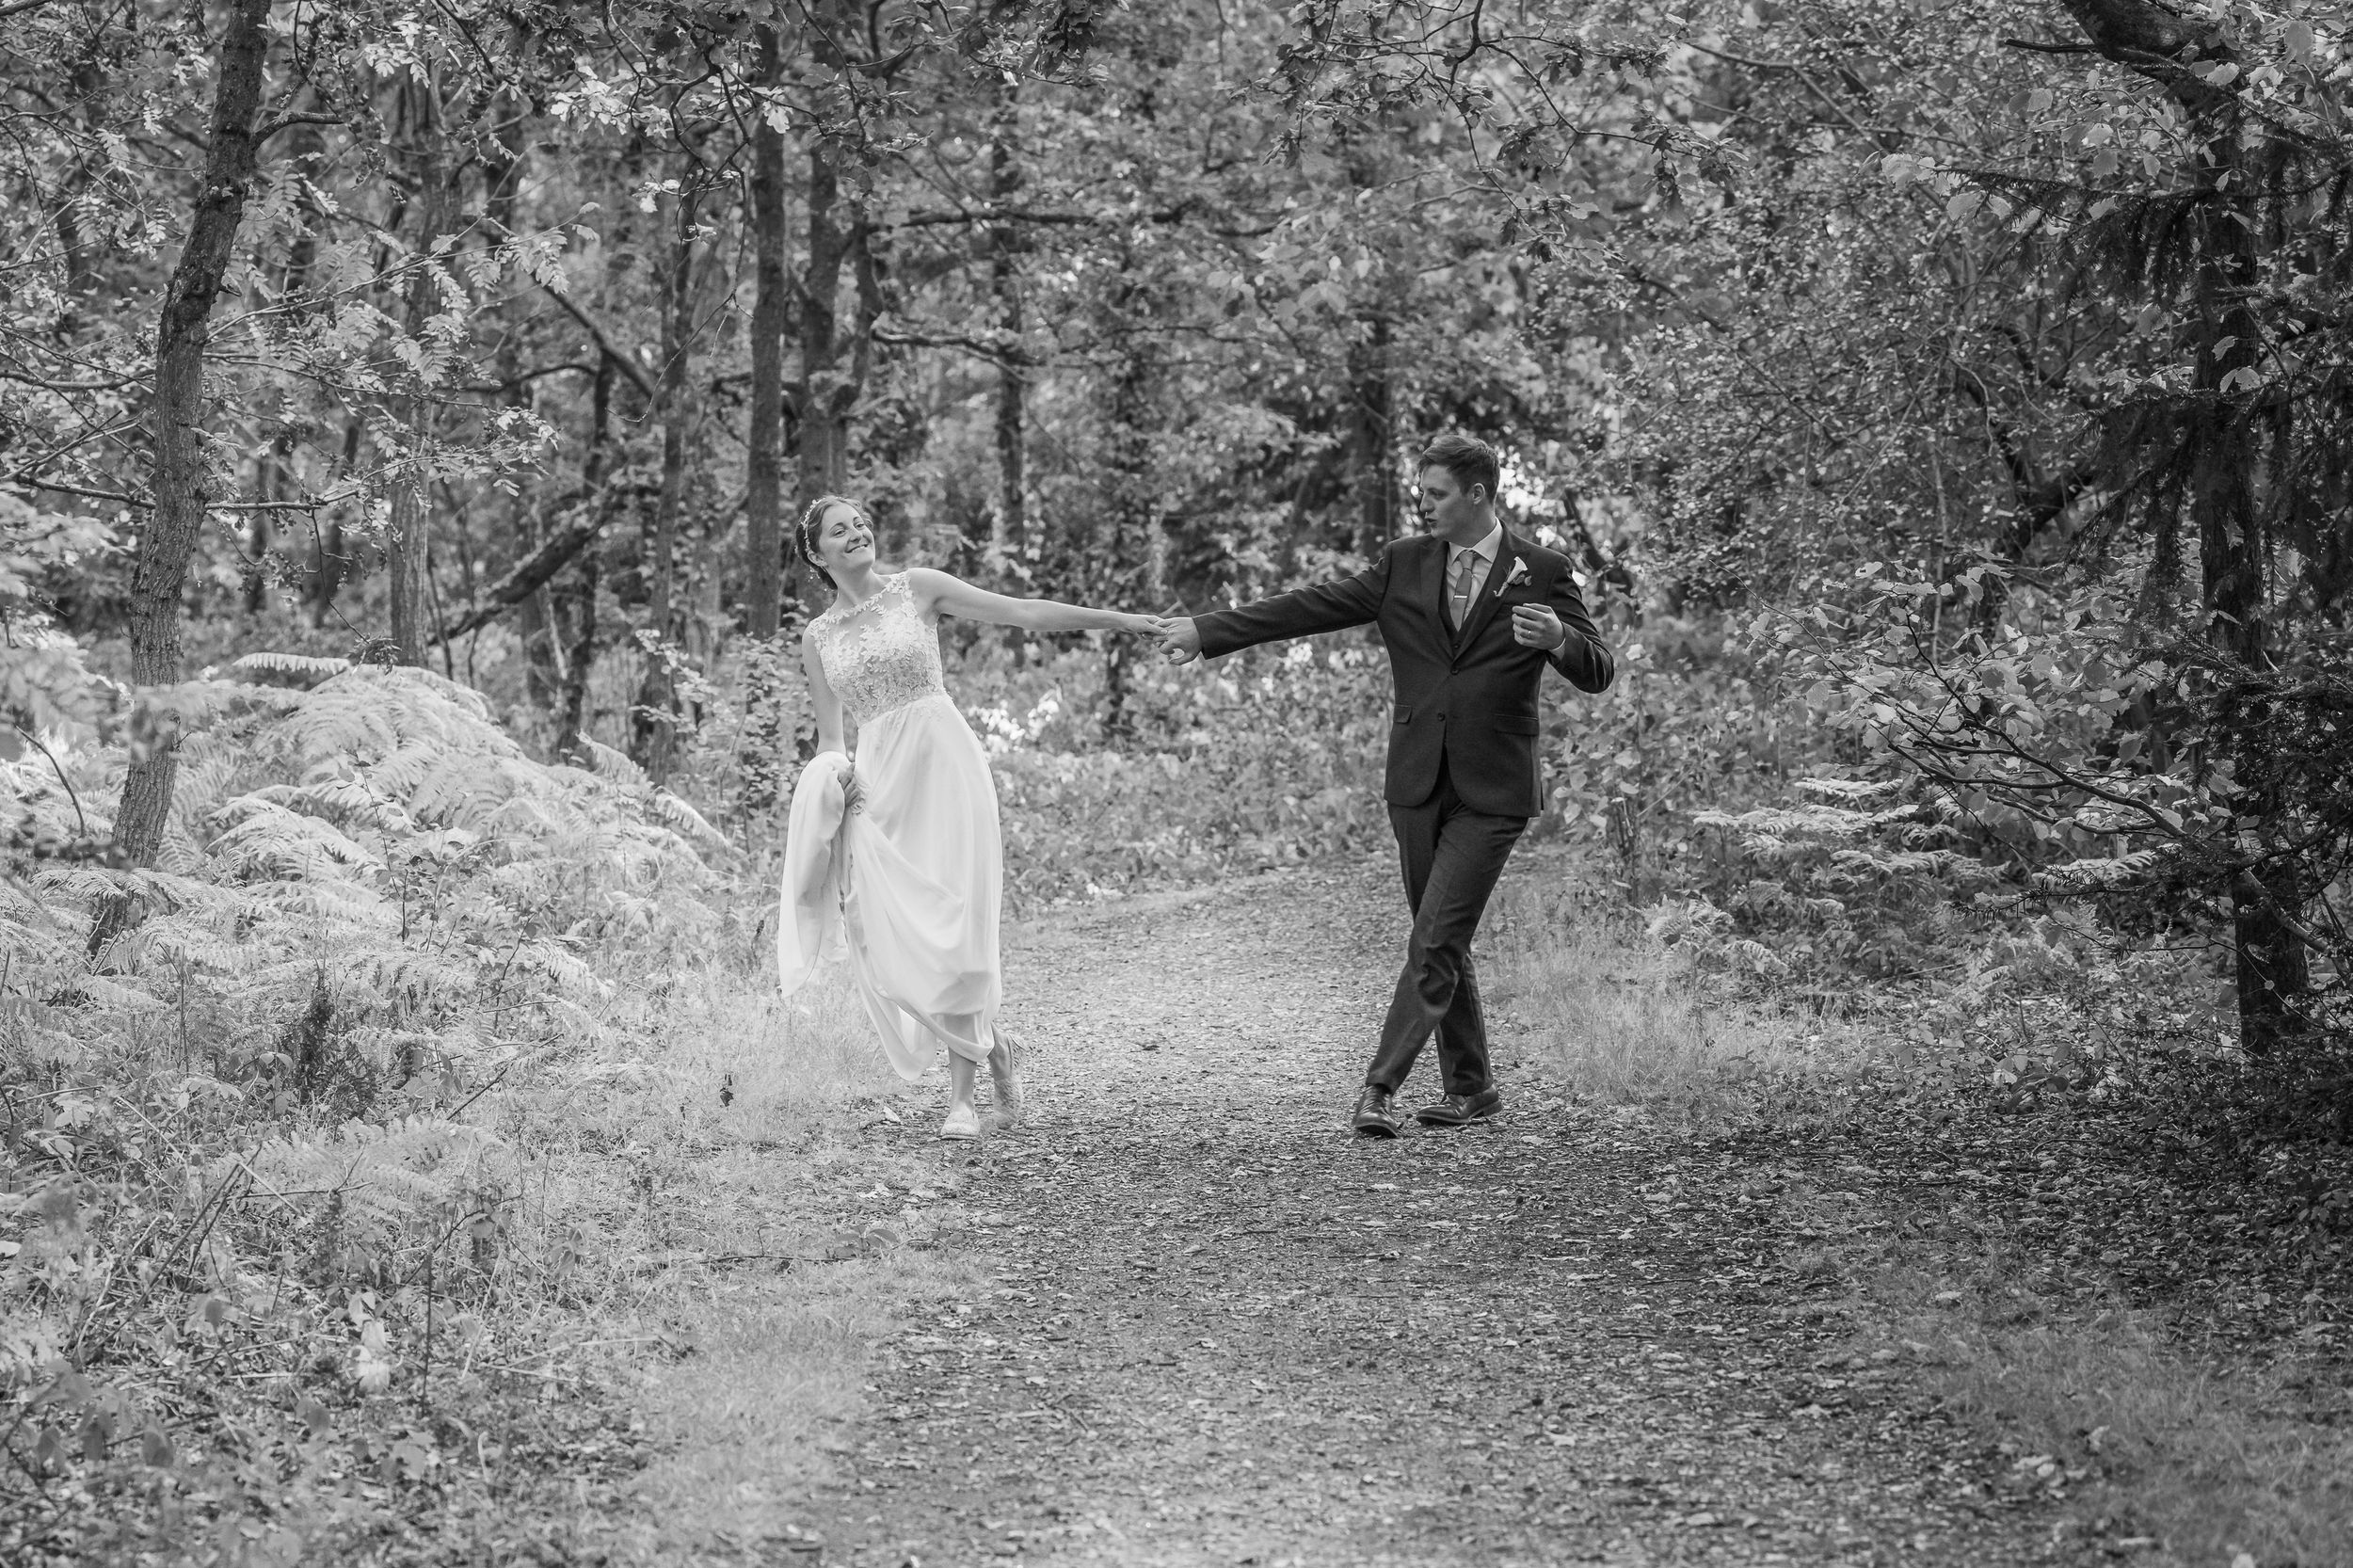 Bride and groom walking and dancing through the forrest